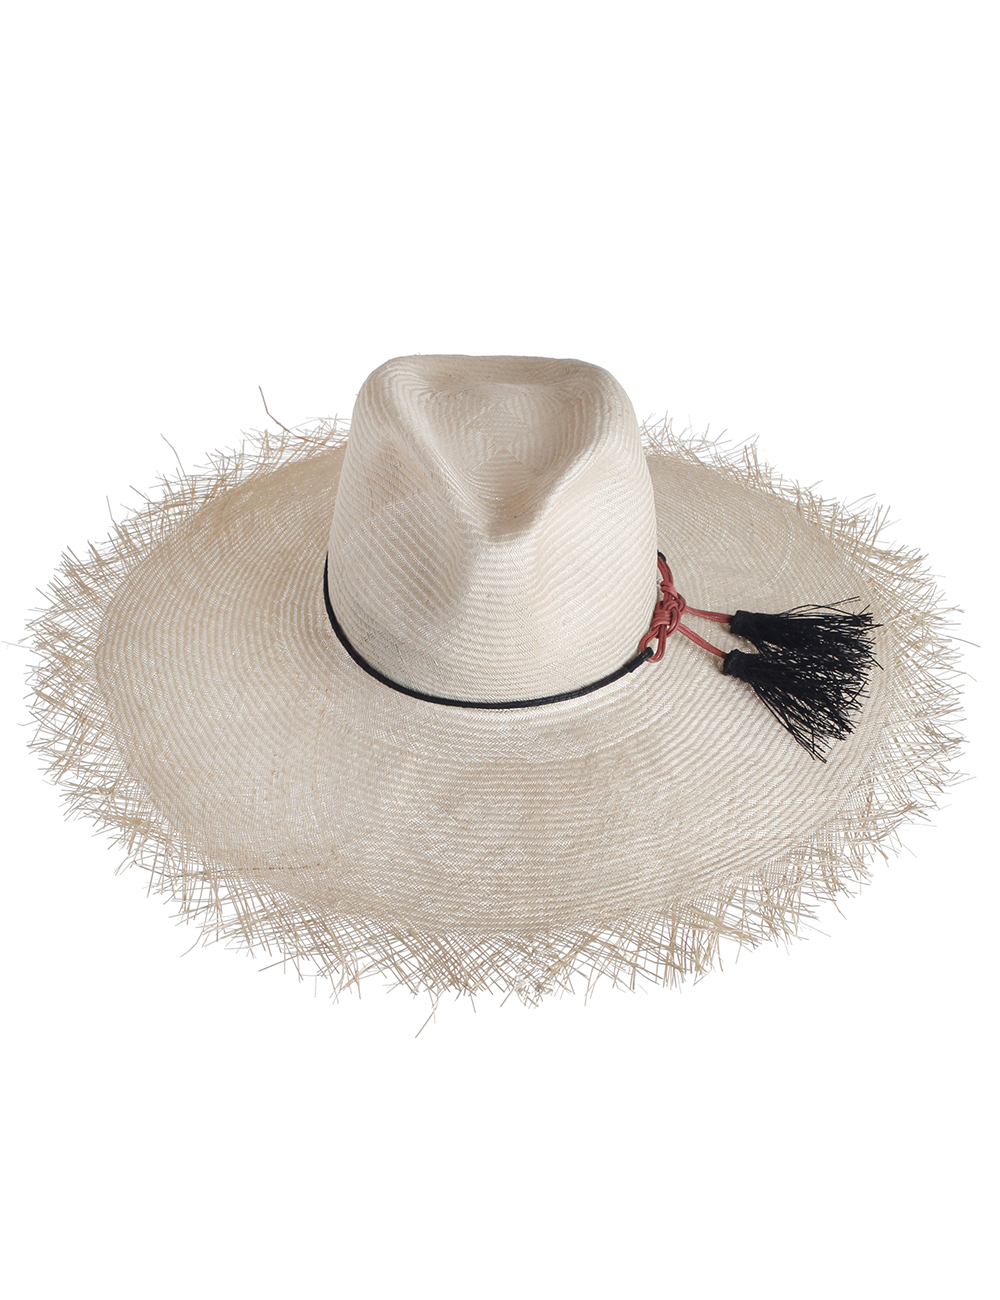 Lyst - Zimmermann Frayed Edge Wide Brim Sun Hat in White 24bfb80d7b13